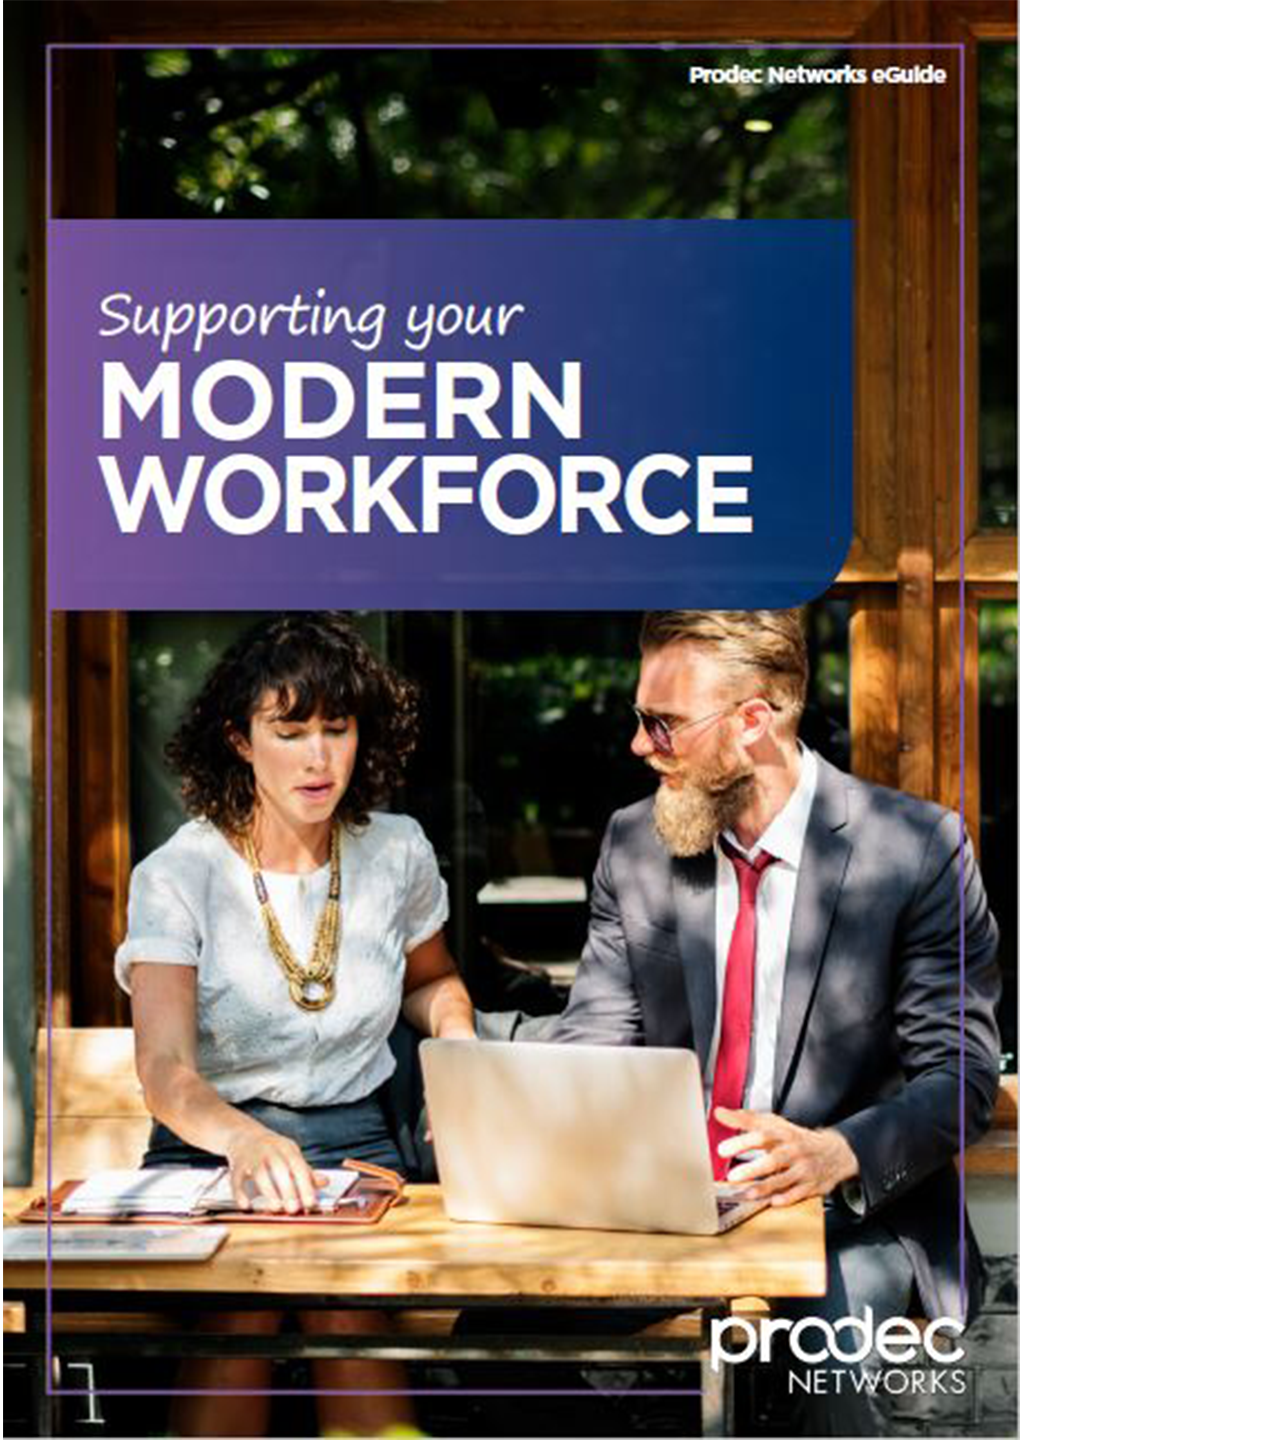 modern workforce eguide image-1.png